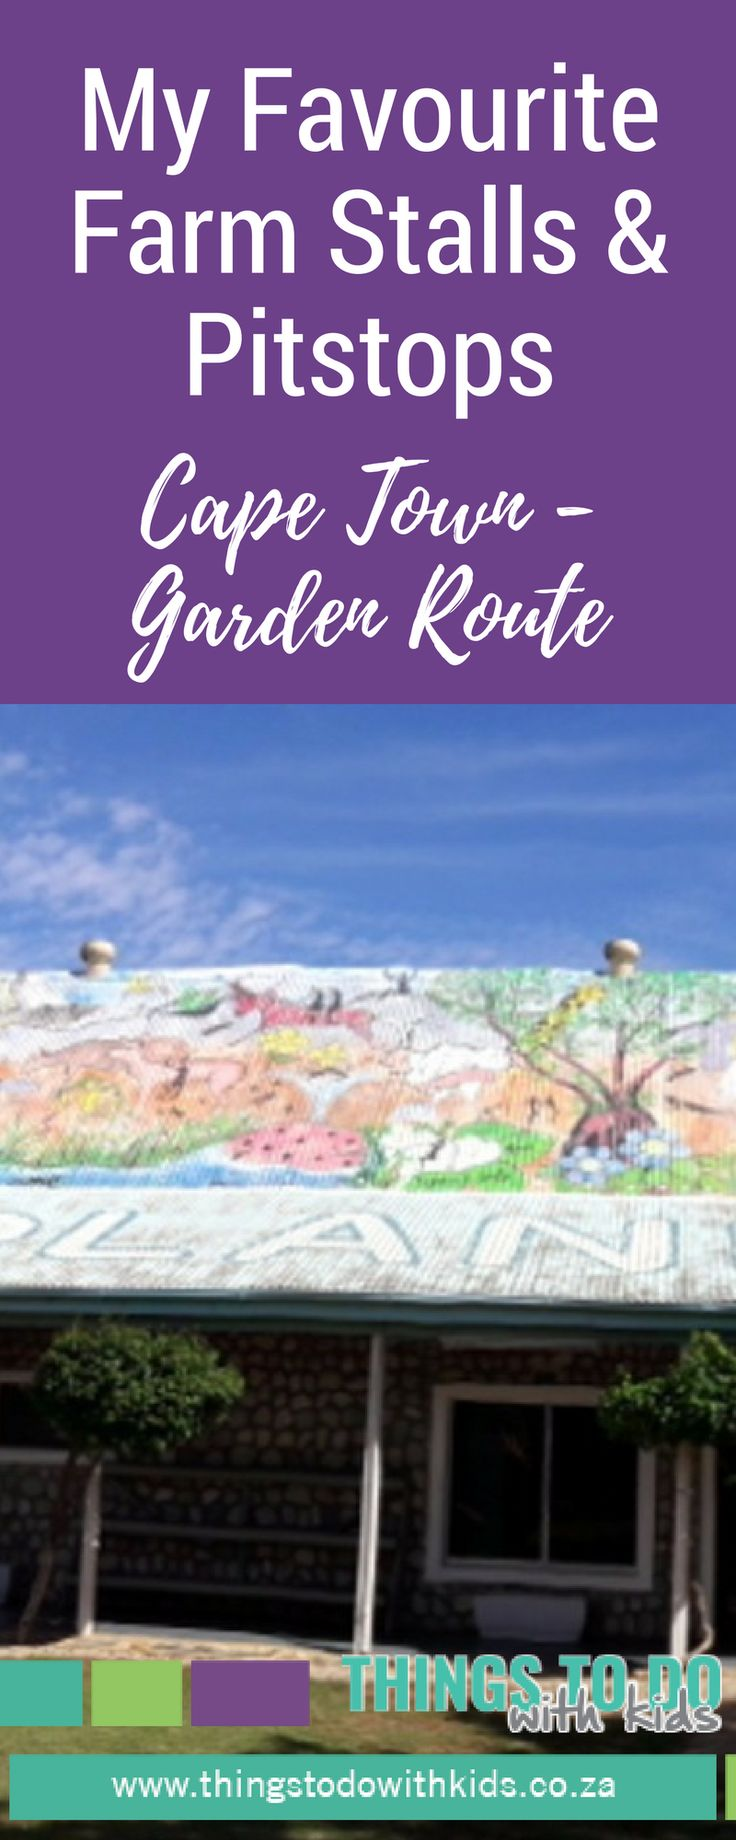 Child-friendly road trip stops between Cape Town and Garden Roue | Road trip from Cape Town to Garden Route | Family-friendly pit stops and farm stalls Cape Town to Garden Route | Things to do with Kids | Activities and Excursions